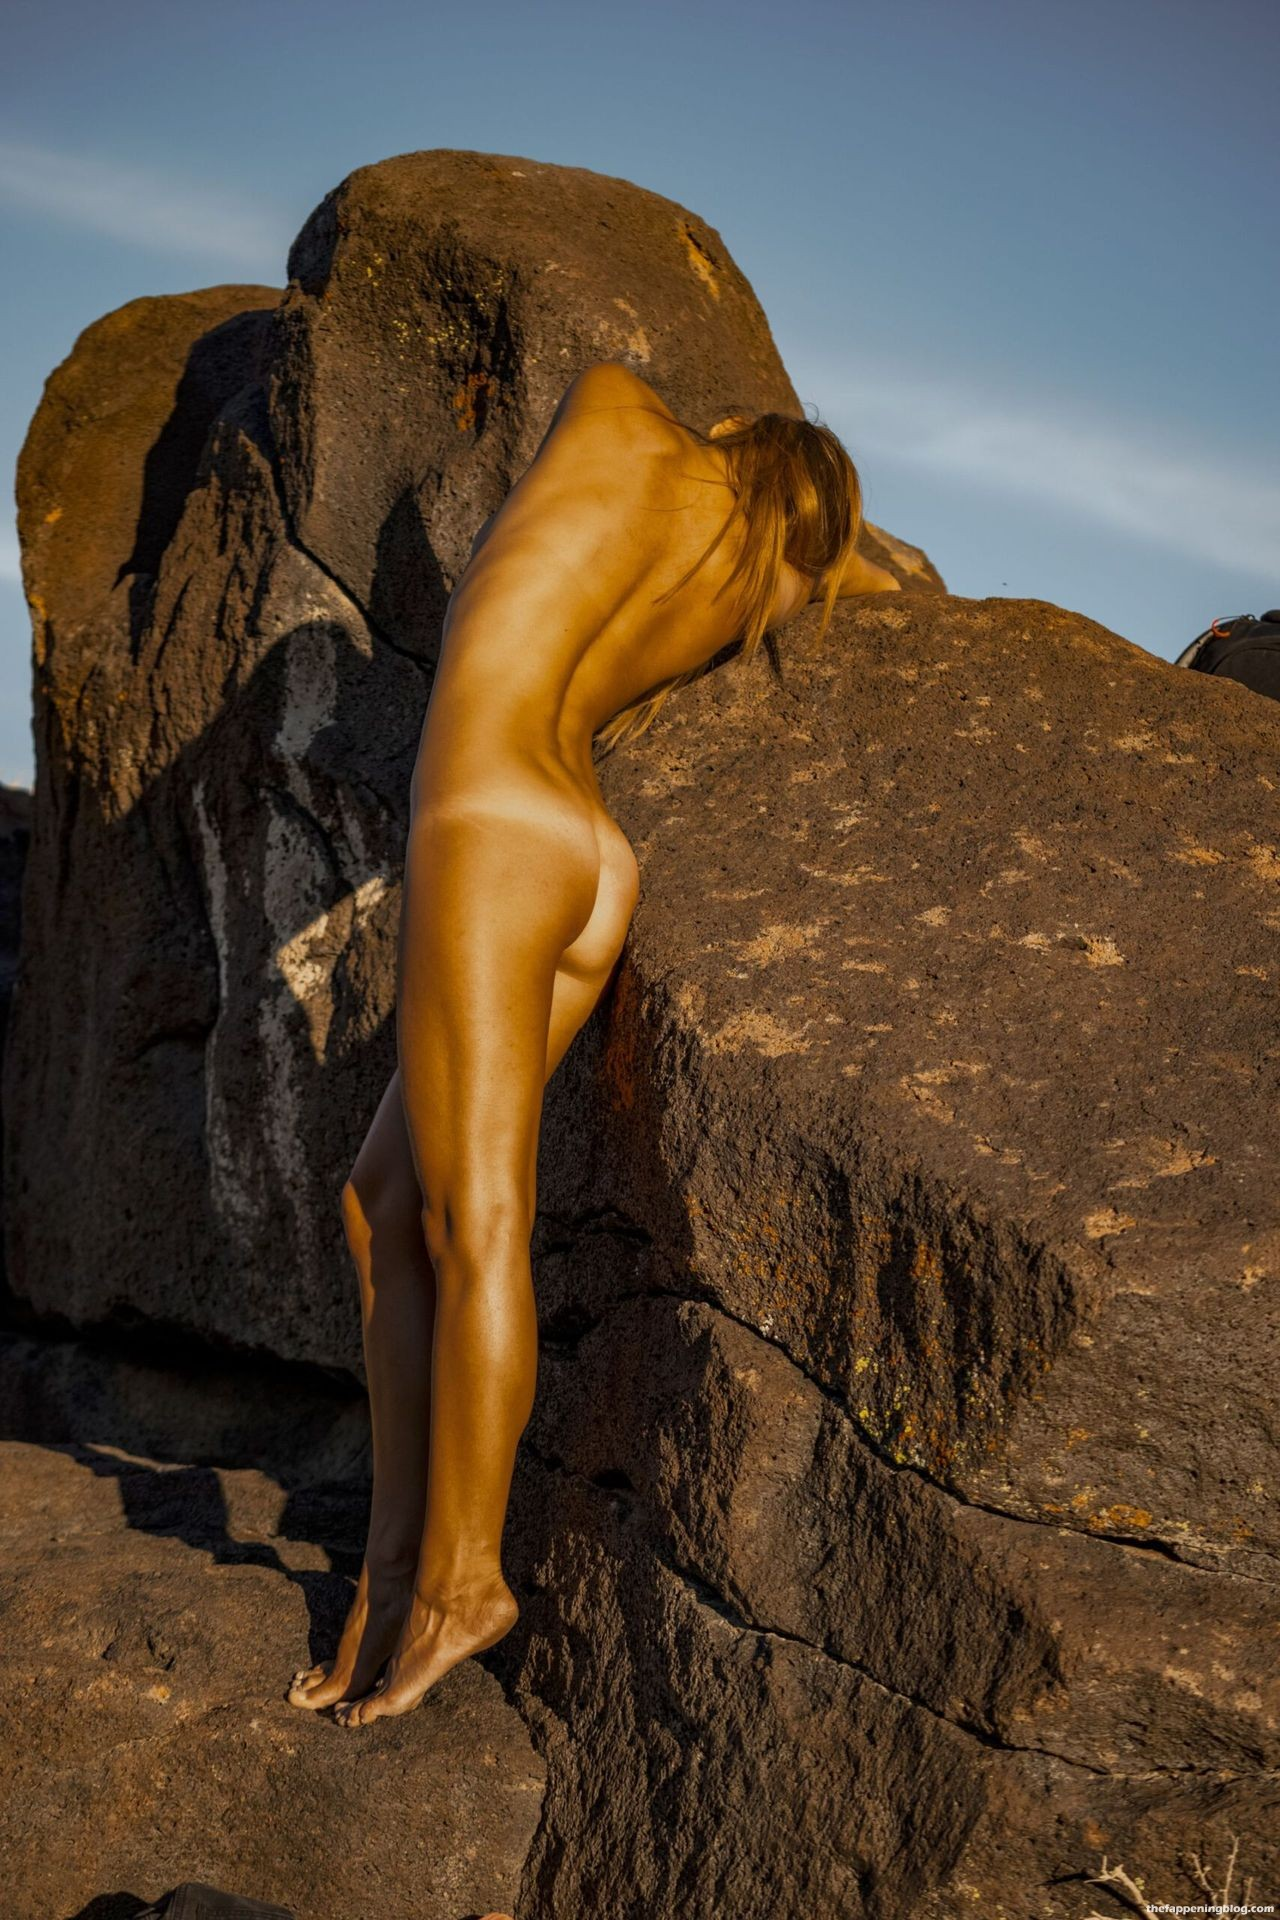 Marisa-Papen-Stunning-Naked-Body-43-scaled1-thefappeningblog.com_.jpg